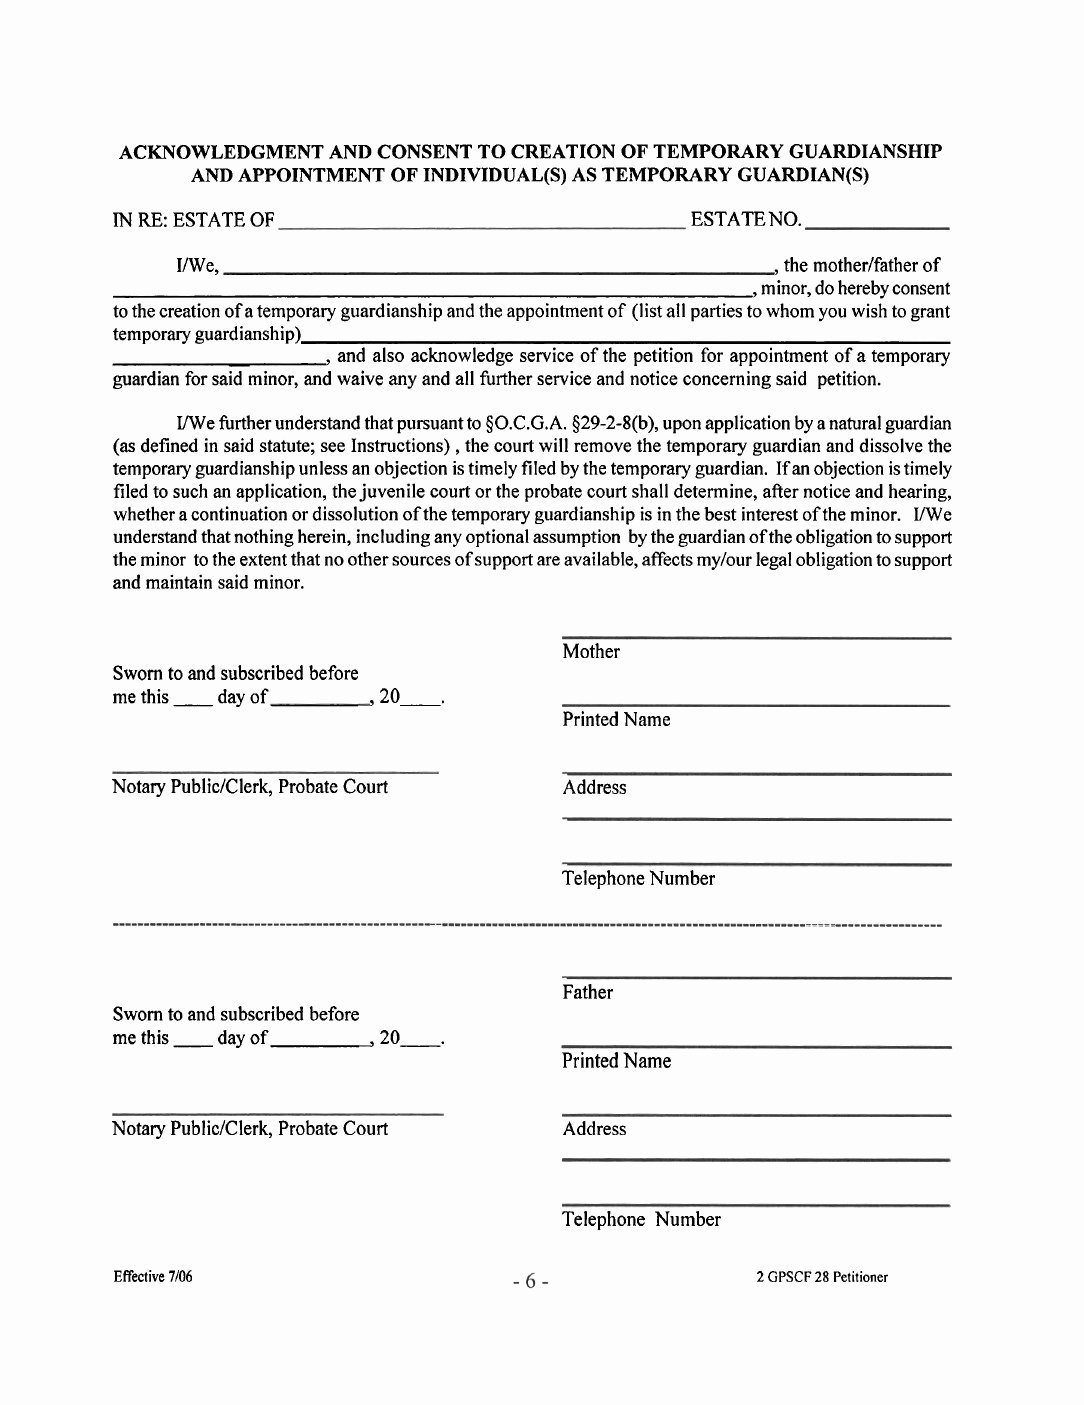 Free Temporary Guardianship form Template Beautiful Free Temporary Guardianship Letter Template Collection